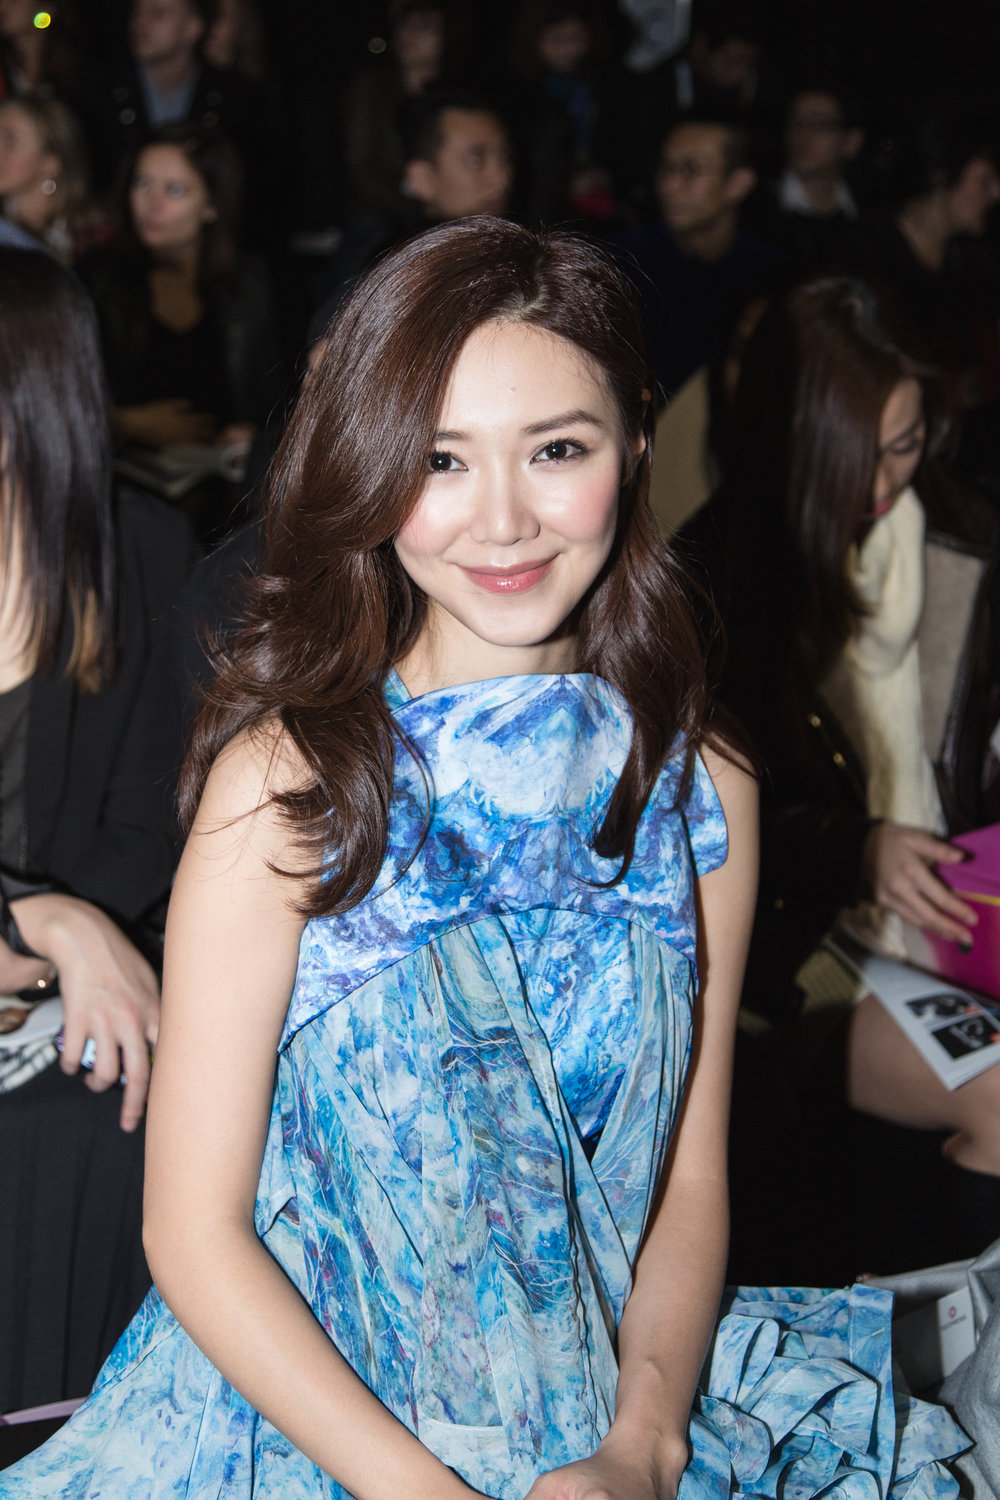 Hong Kong actress Elva Ni wears Angus Tsui to attend the Redress Design Award 2015/16 Grand Final Show